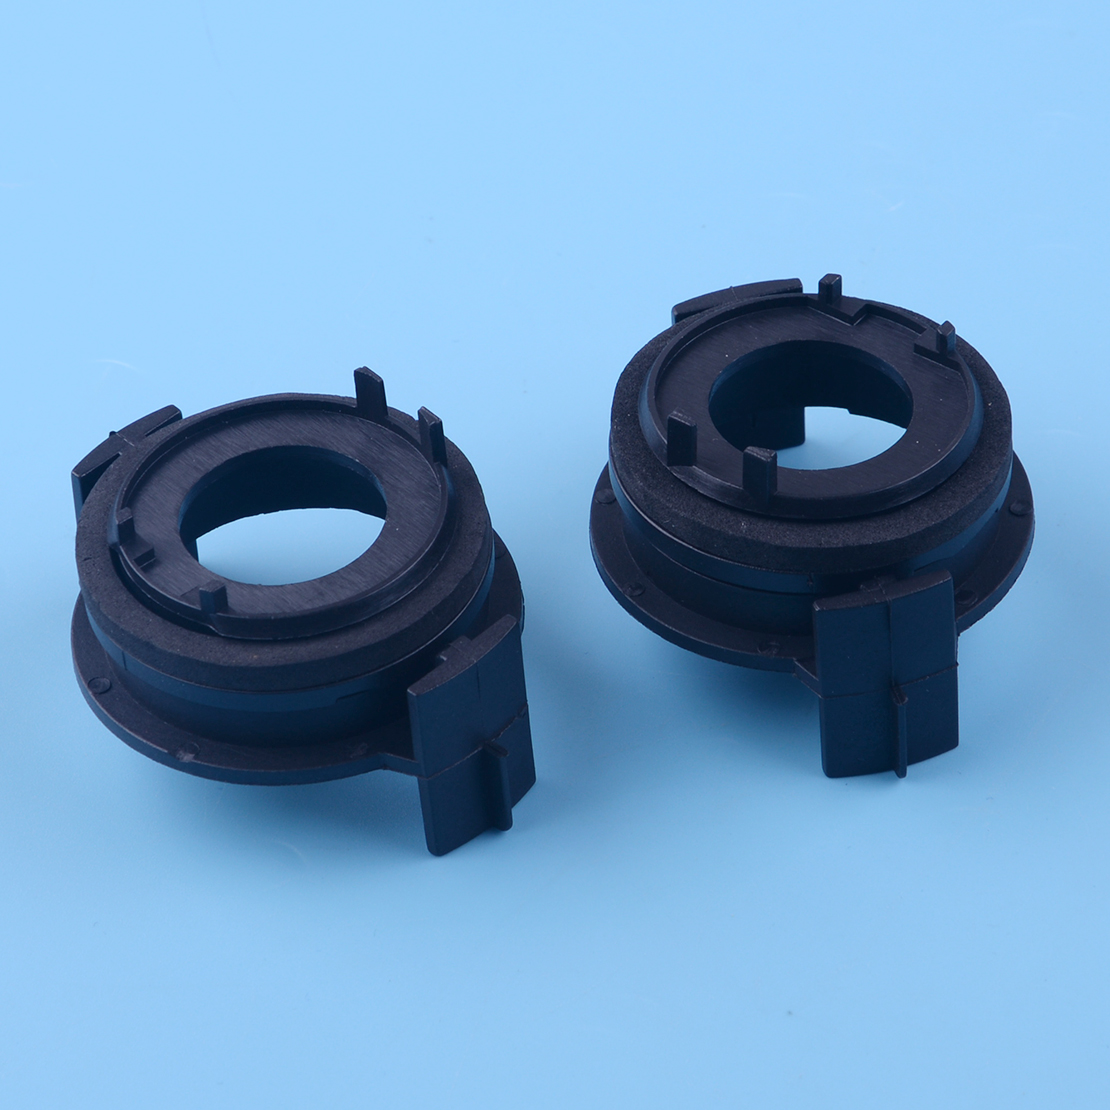 DWCX 2pcs Black Plastic <font><b>LED</b></font> Headlight Bulbs Lamp Light Clip <font><b>Adapter</b></font> Socket Base Holder Retainer Fit For <font><b>BMW</b></font> <font><b>E46</b></font> E90 3 Series image